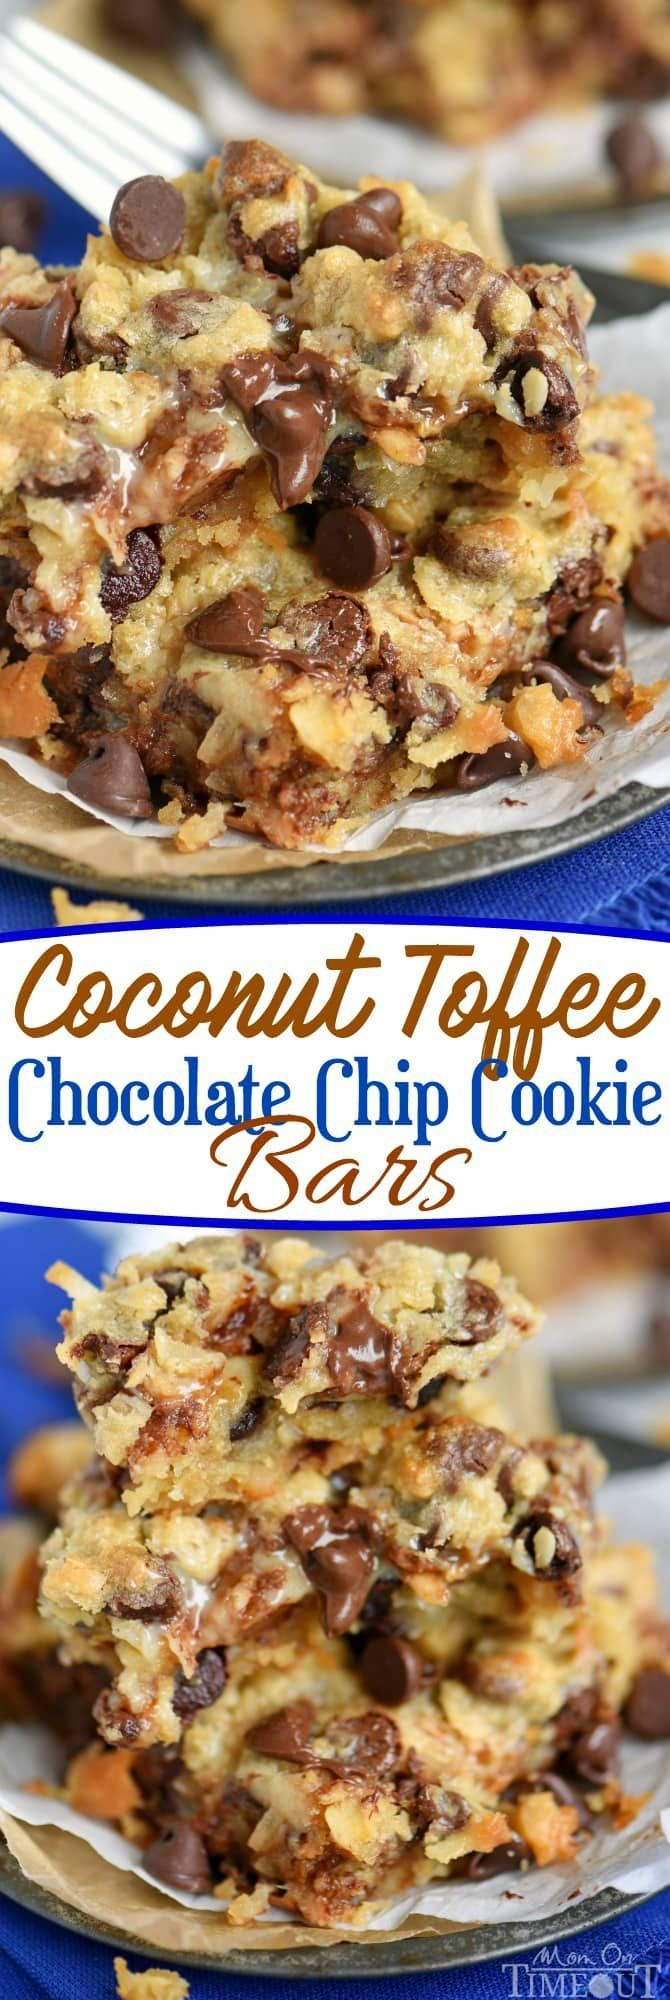 Coconut Toffee Chocolate Chip Cookie Bars Recipe Toffee Chocolate Chip Cookie Bars Recipe